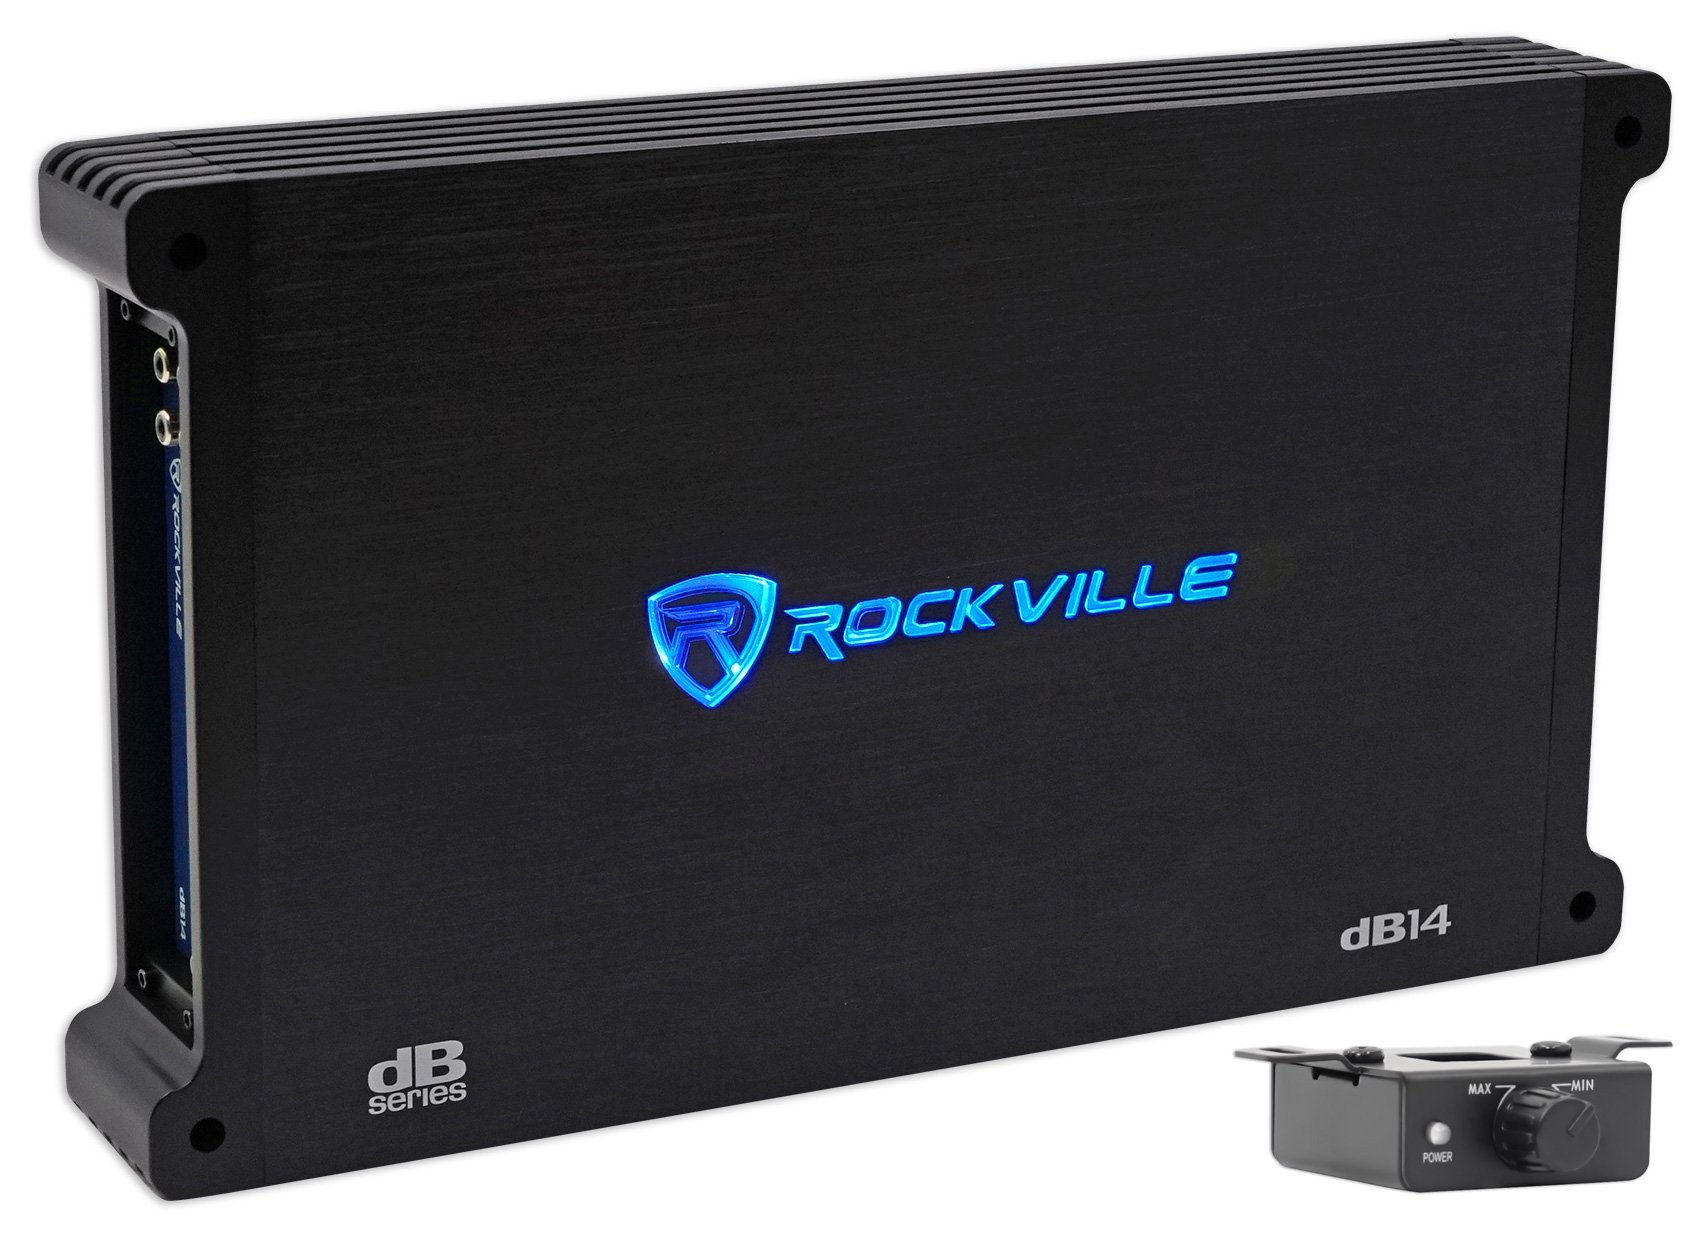 Rockville dB14 4000 Watt/2000w RMS Mono Class D 2 Ohm Amplifier Car Audio Amp by Rockville (Image #1)